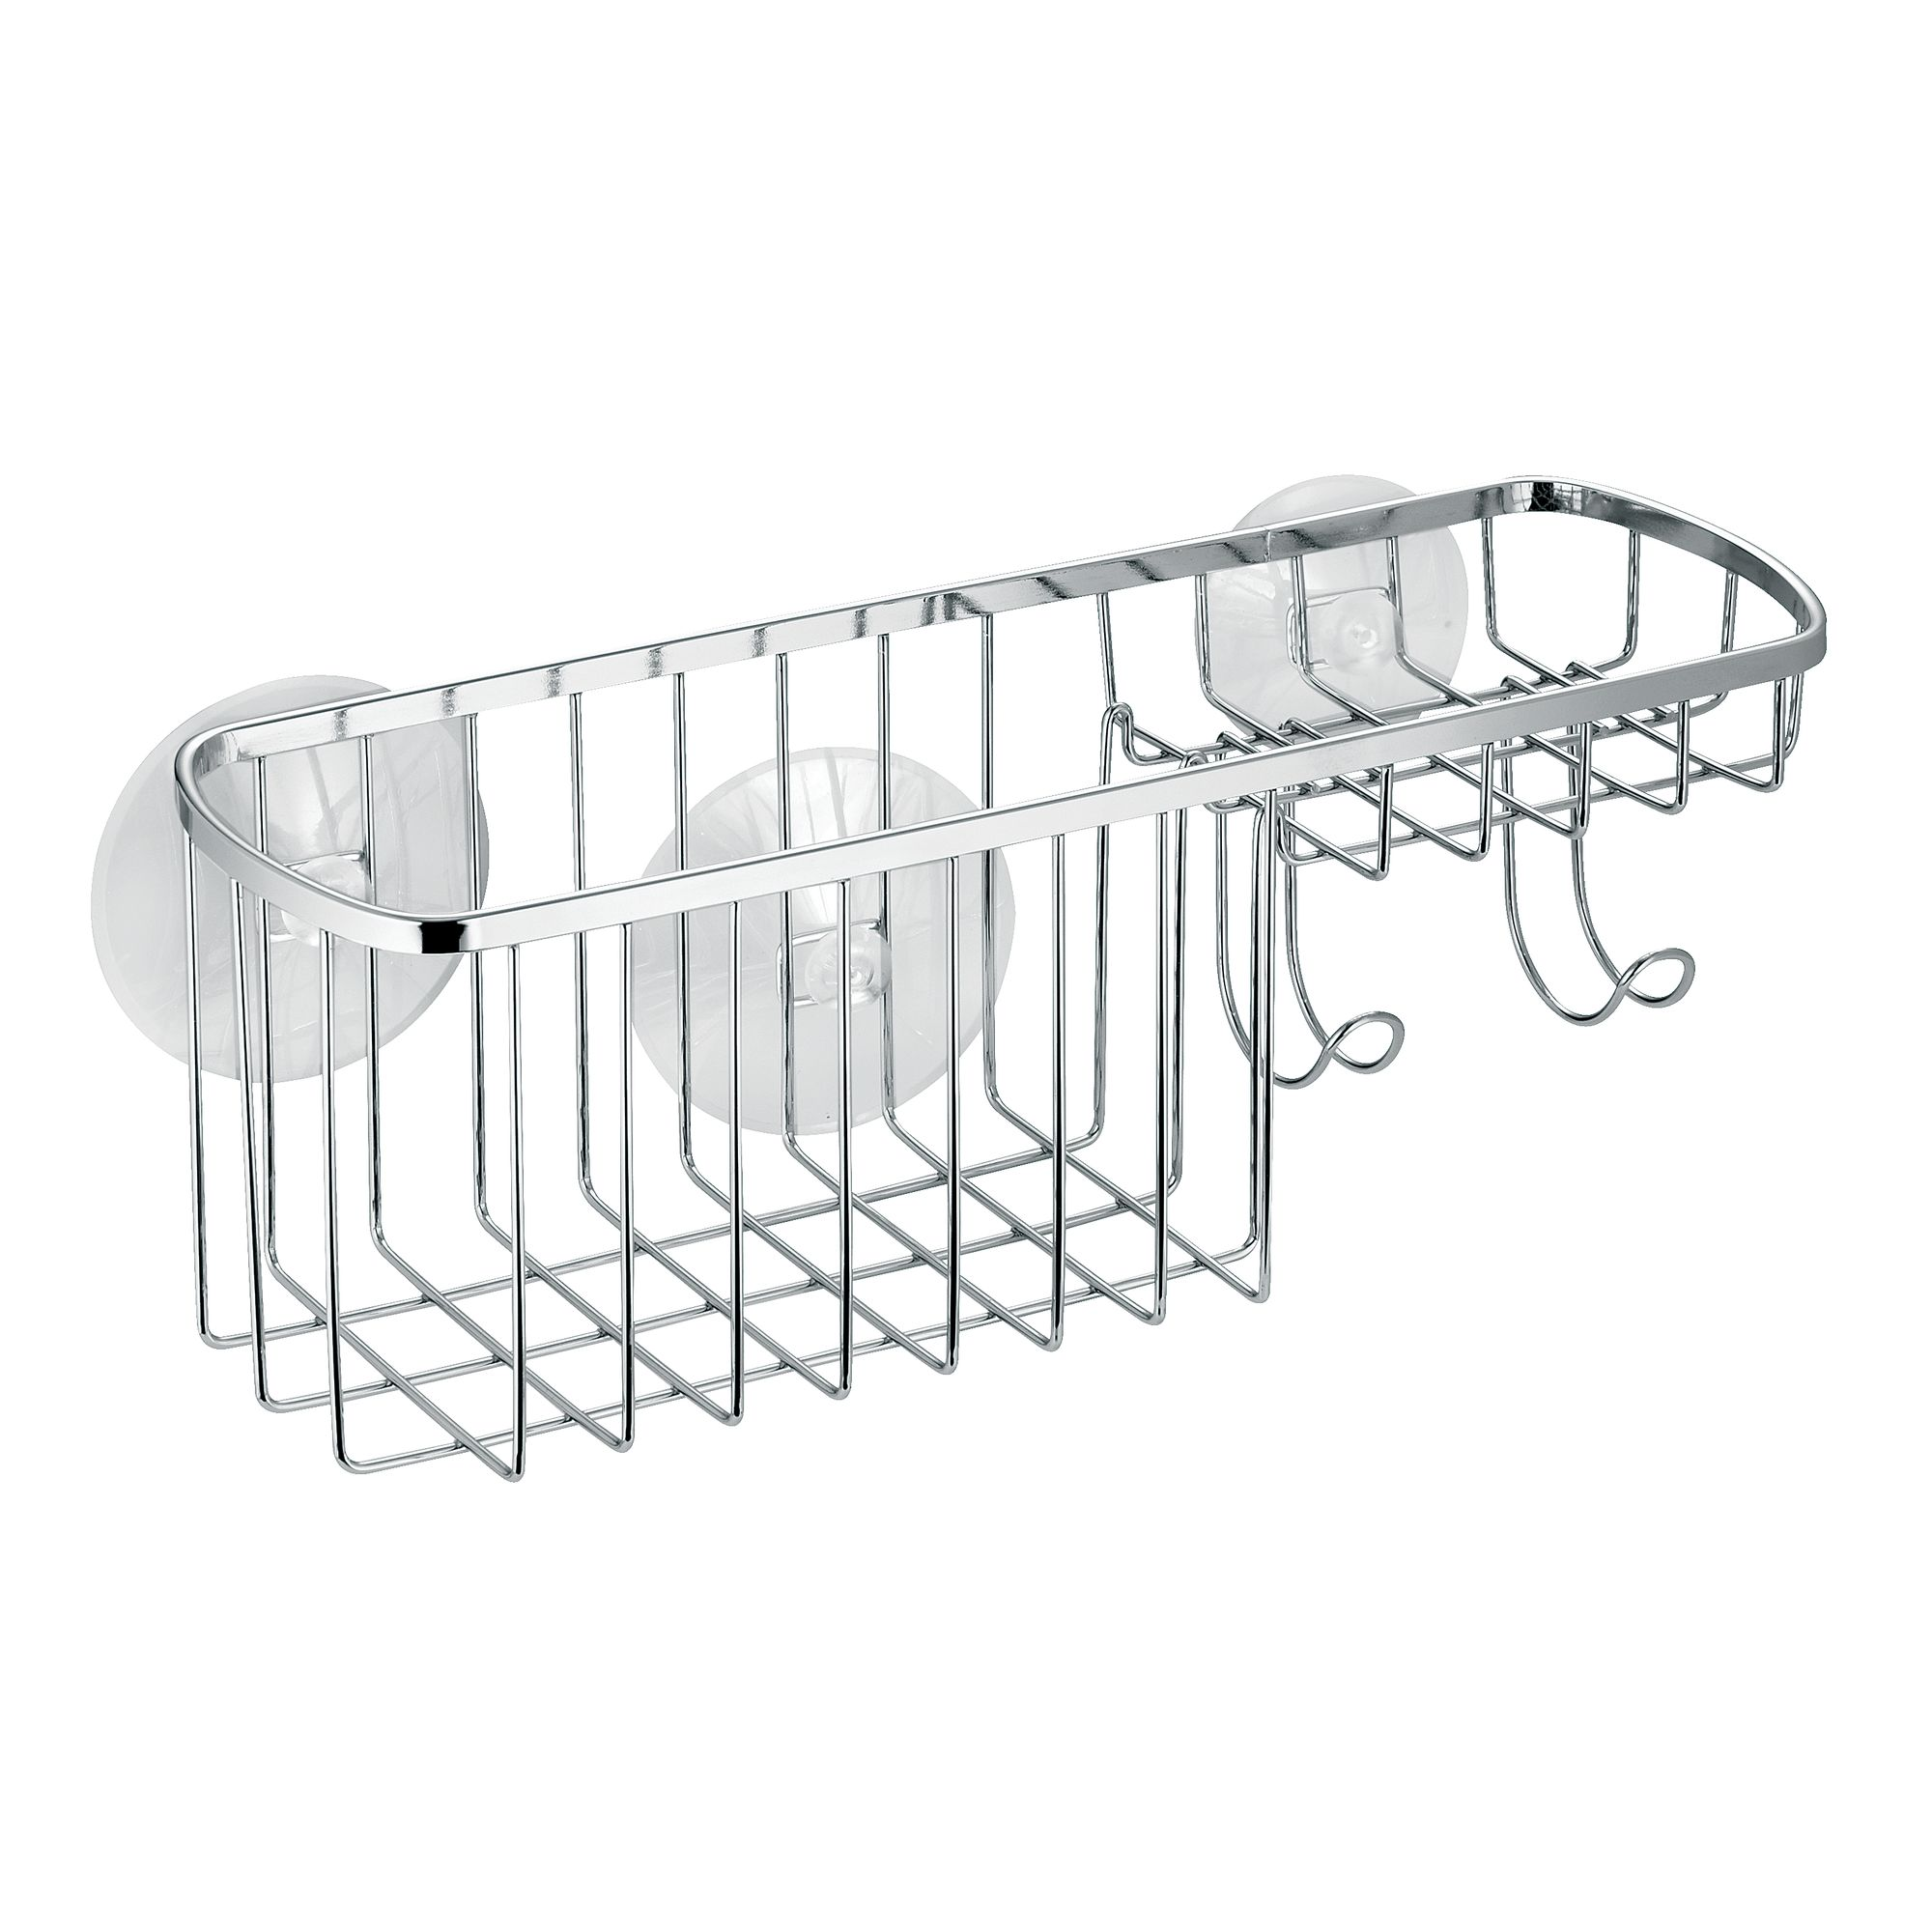 InterDesign Suction Bathroom Shower Caddy Combo Organizer Basket for Shampoo, Conditioner, Soap, Polished Stainless Steel